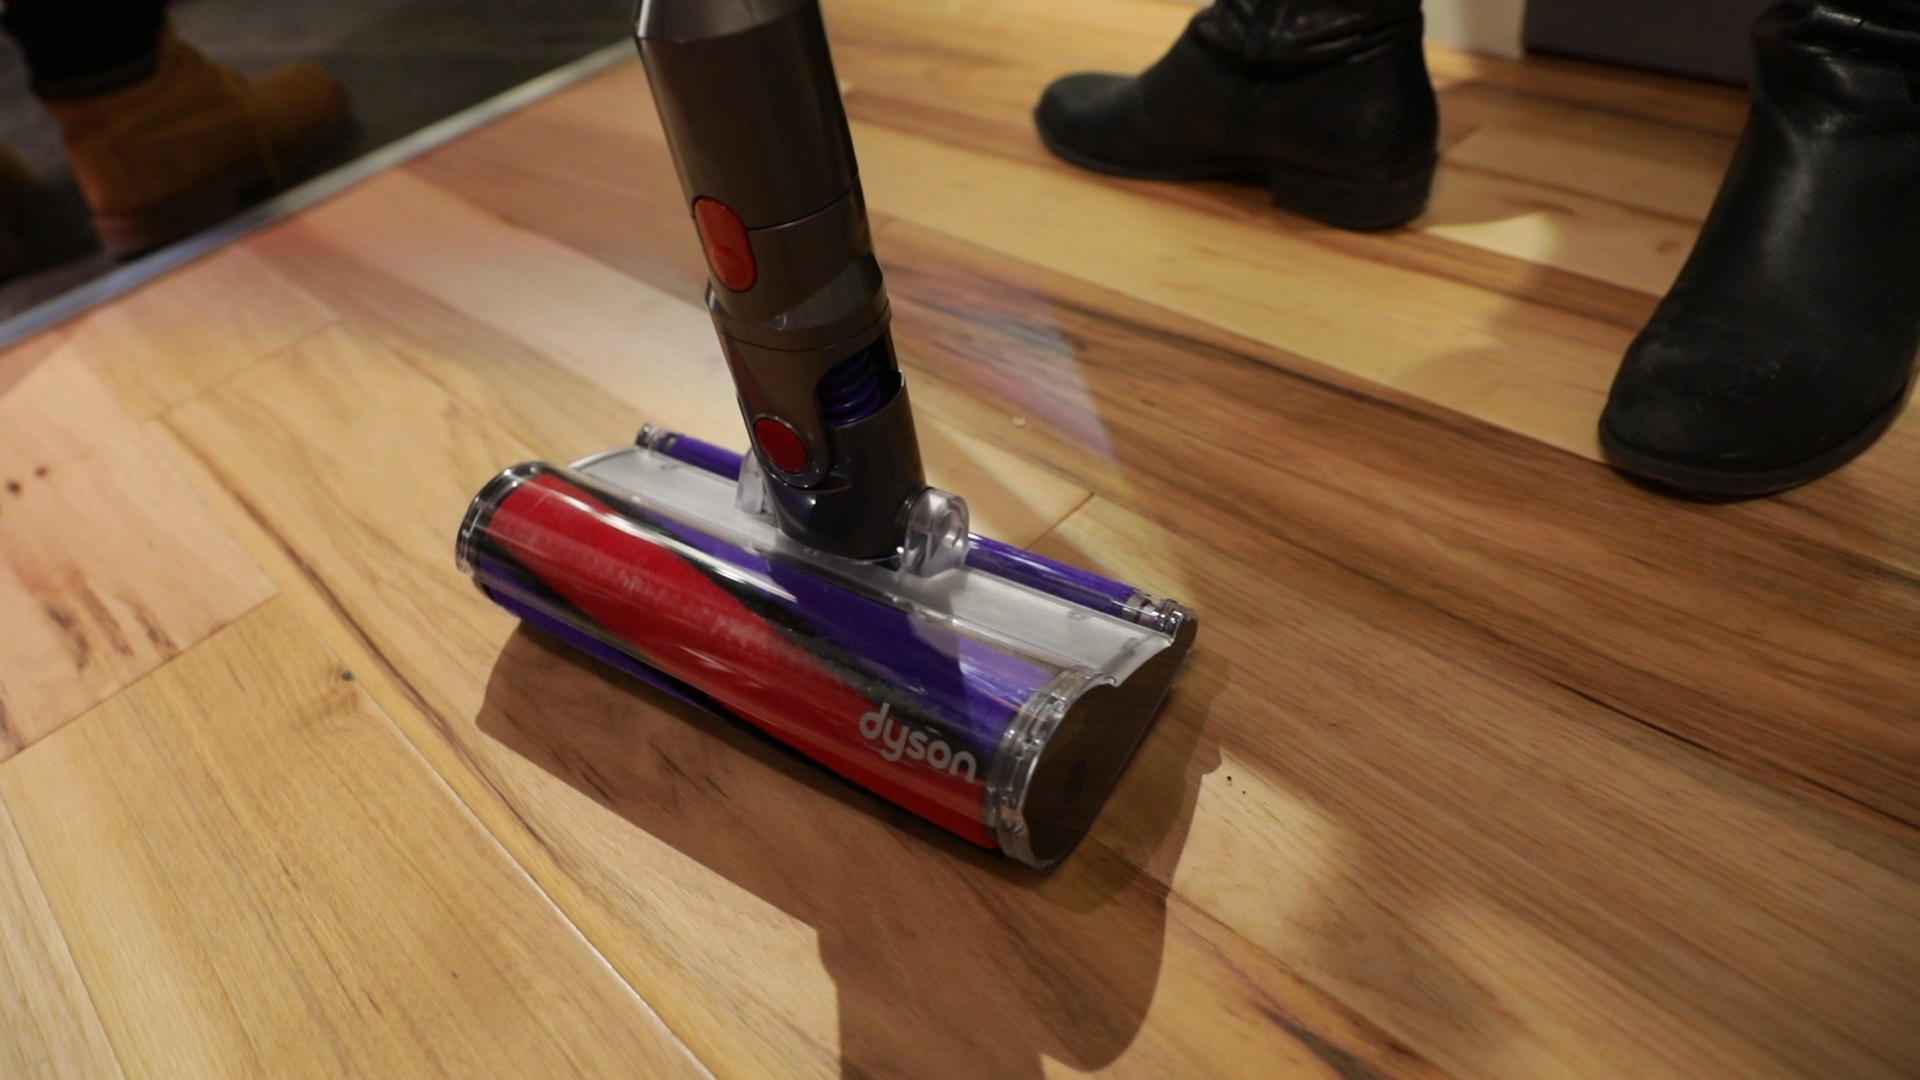 Video: With Cyclone V10, Dyson says goodbye forever to corded vacuums